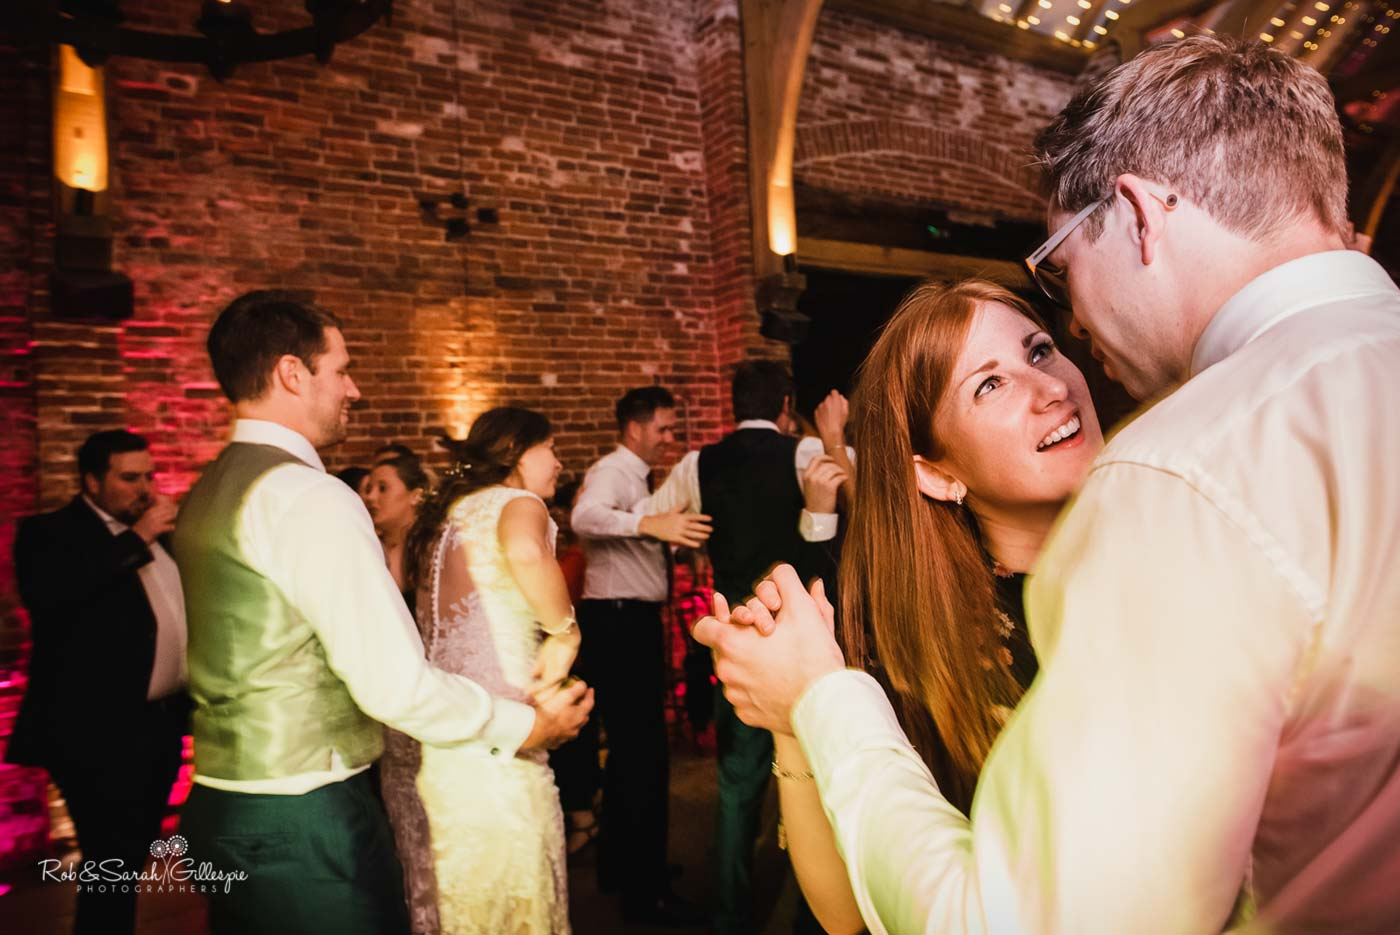 Guests dancing at Hazel Gap Barn wedding